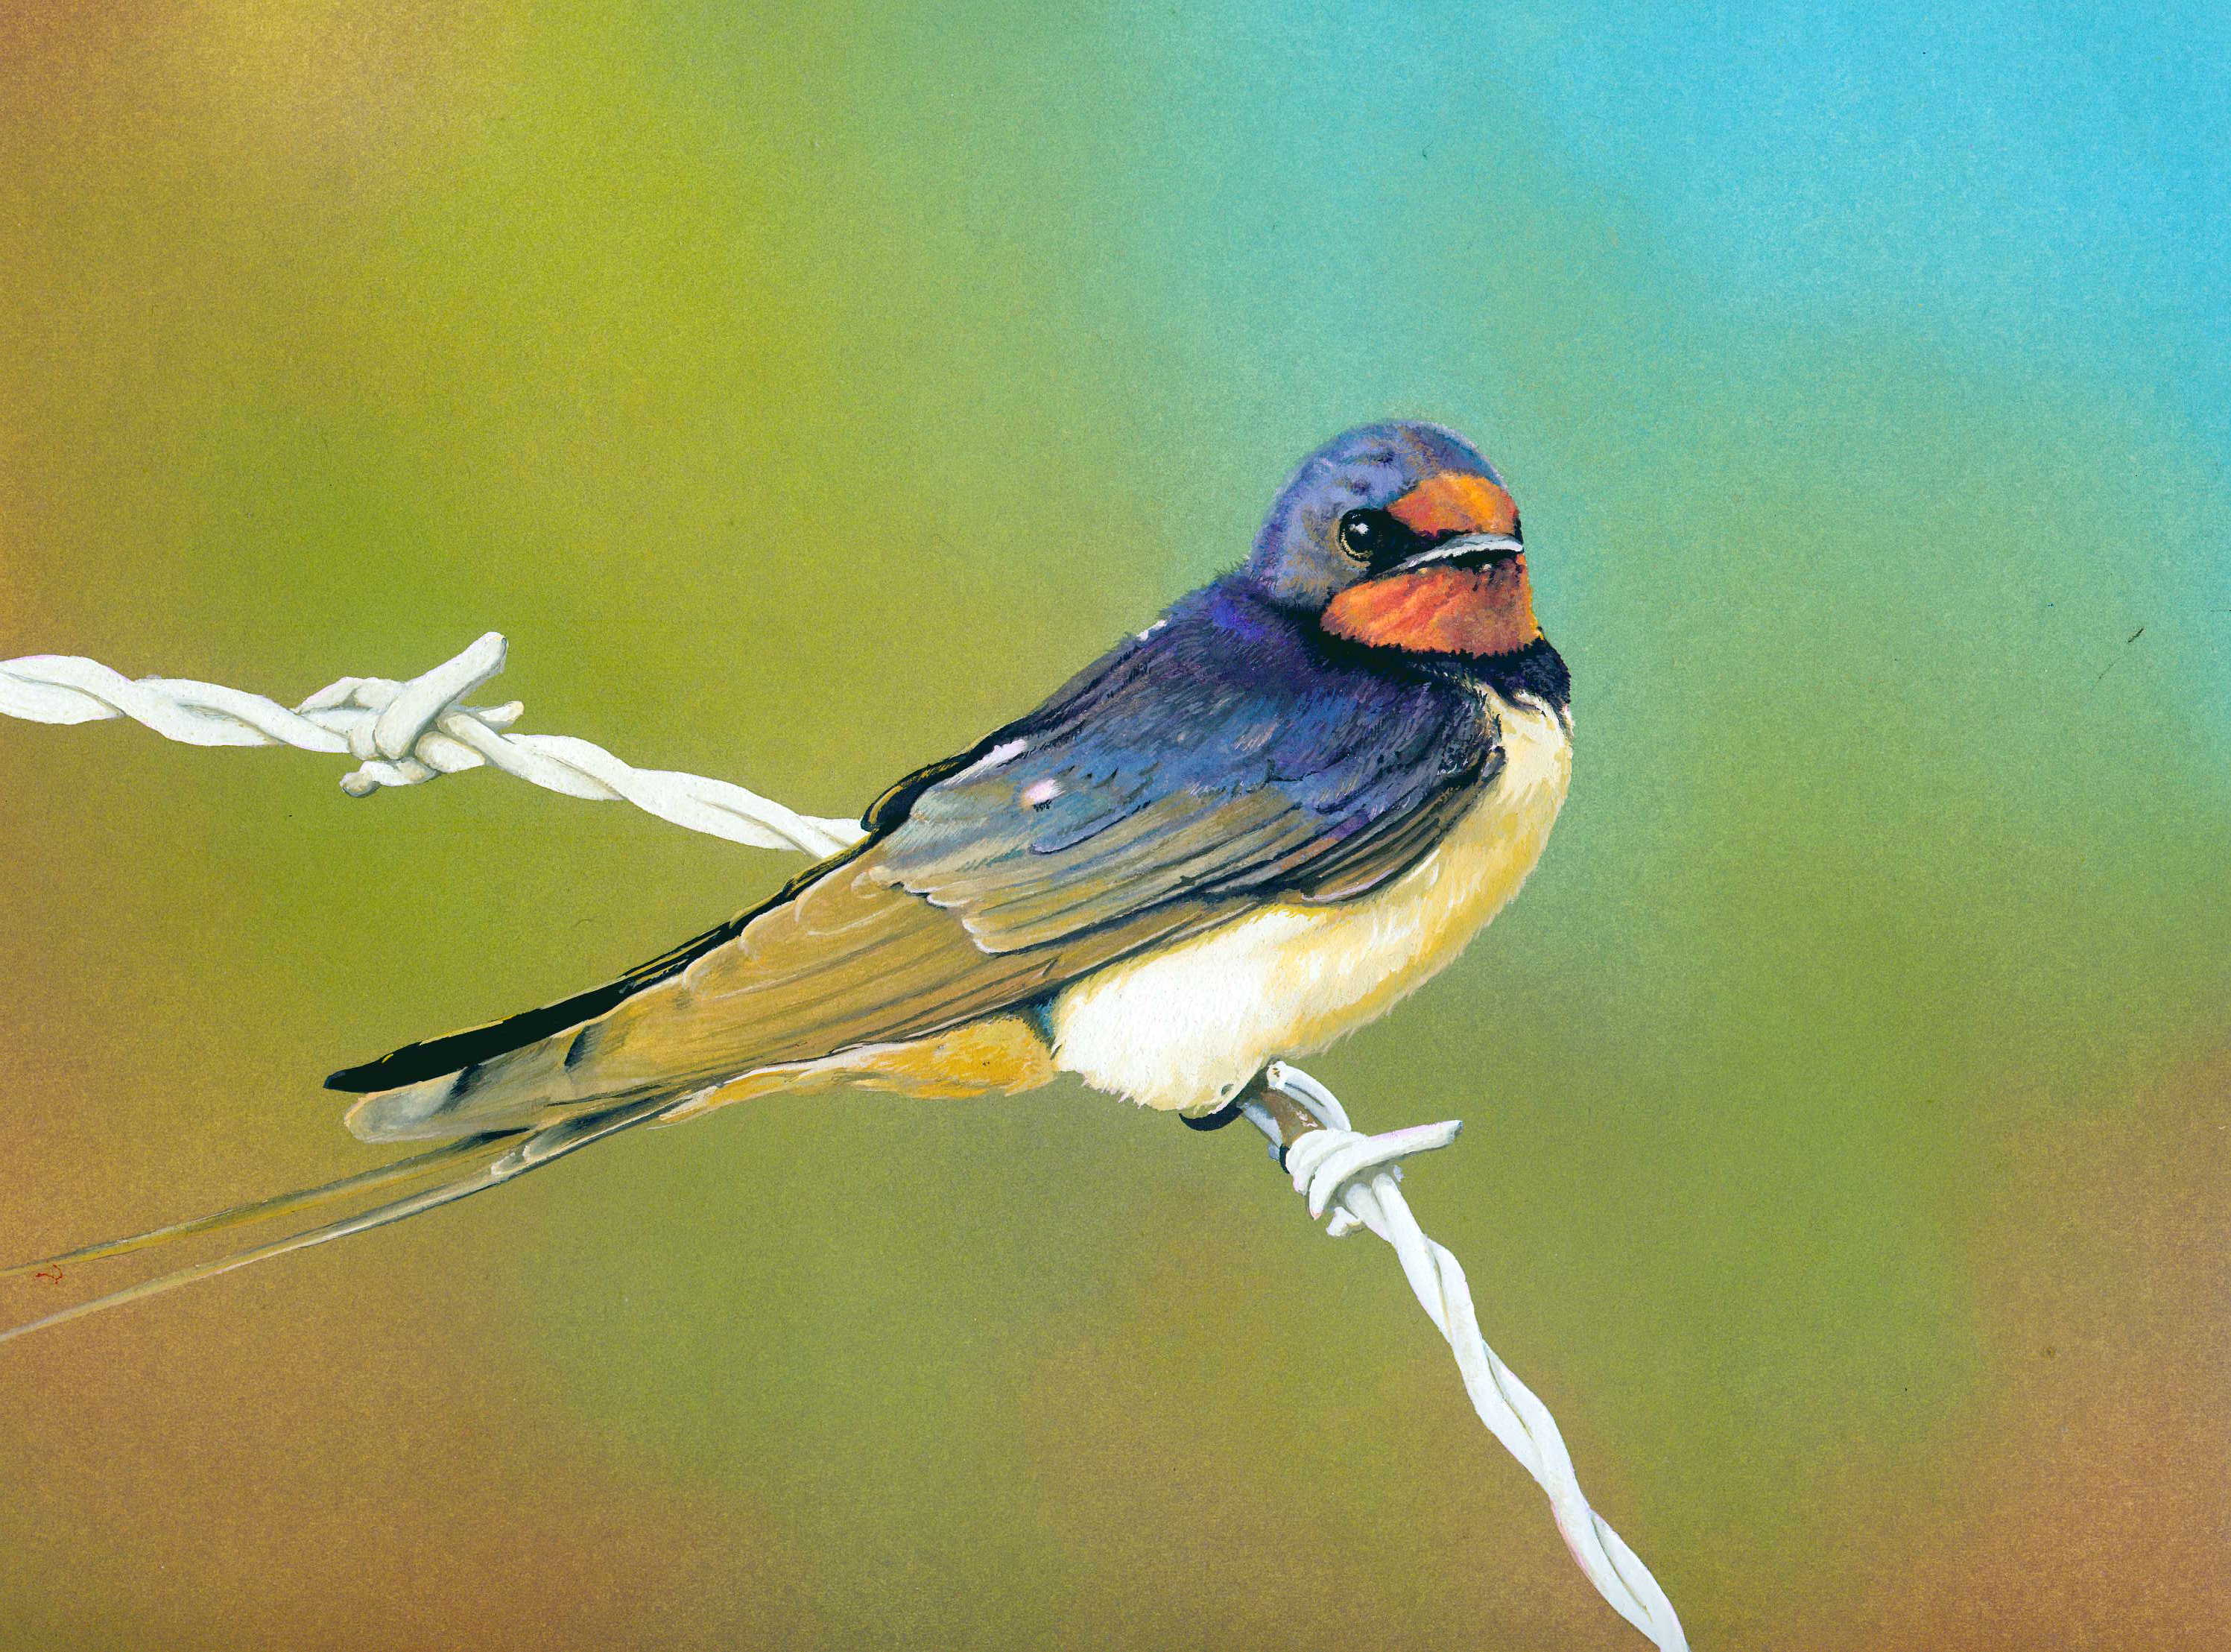 Swallow in Guache